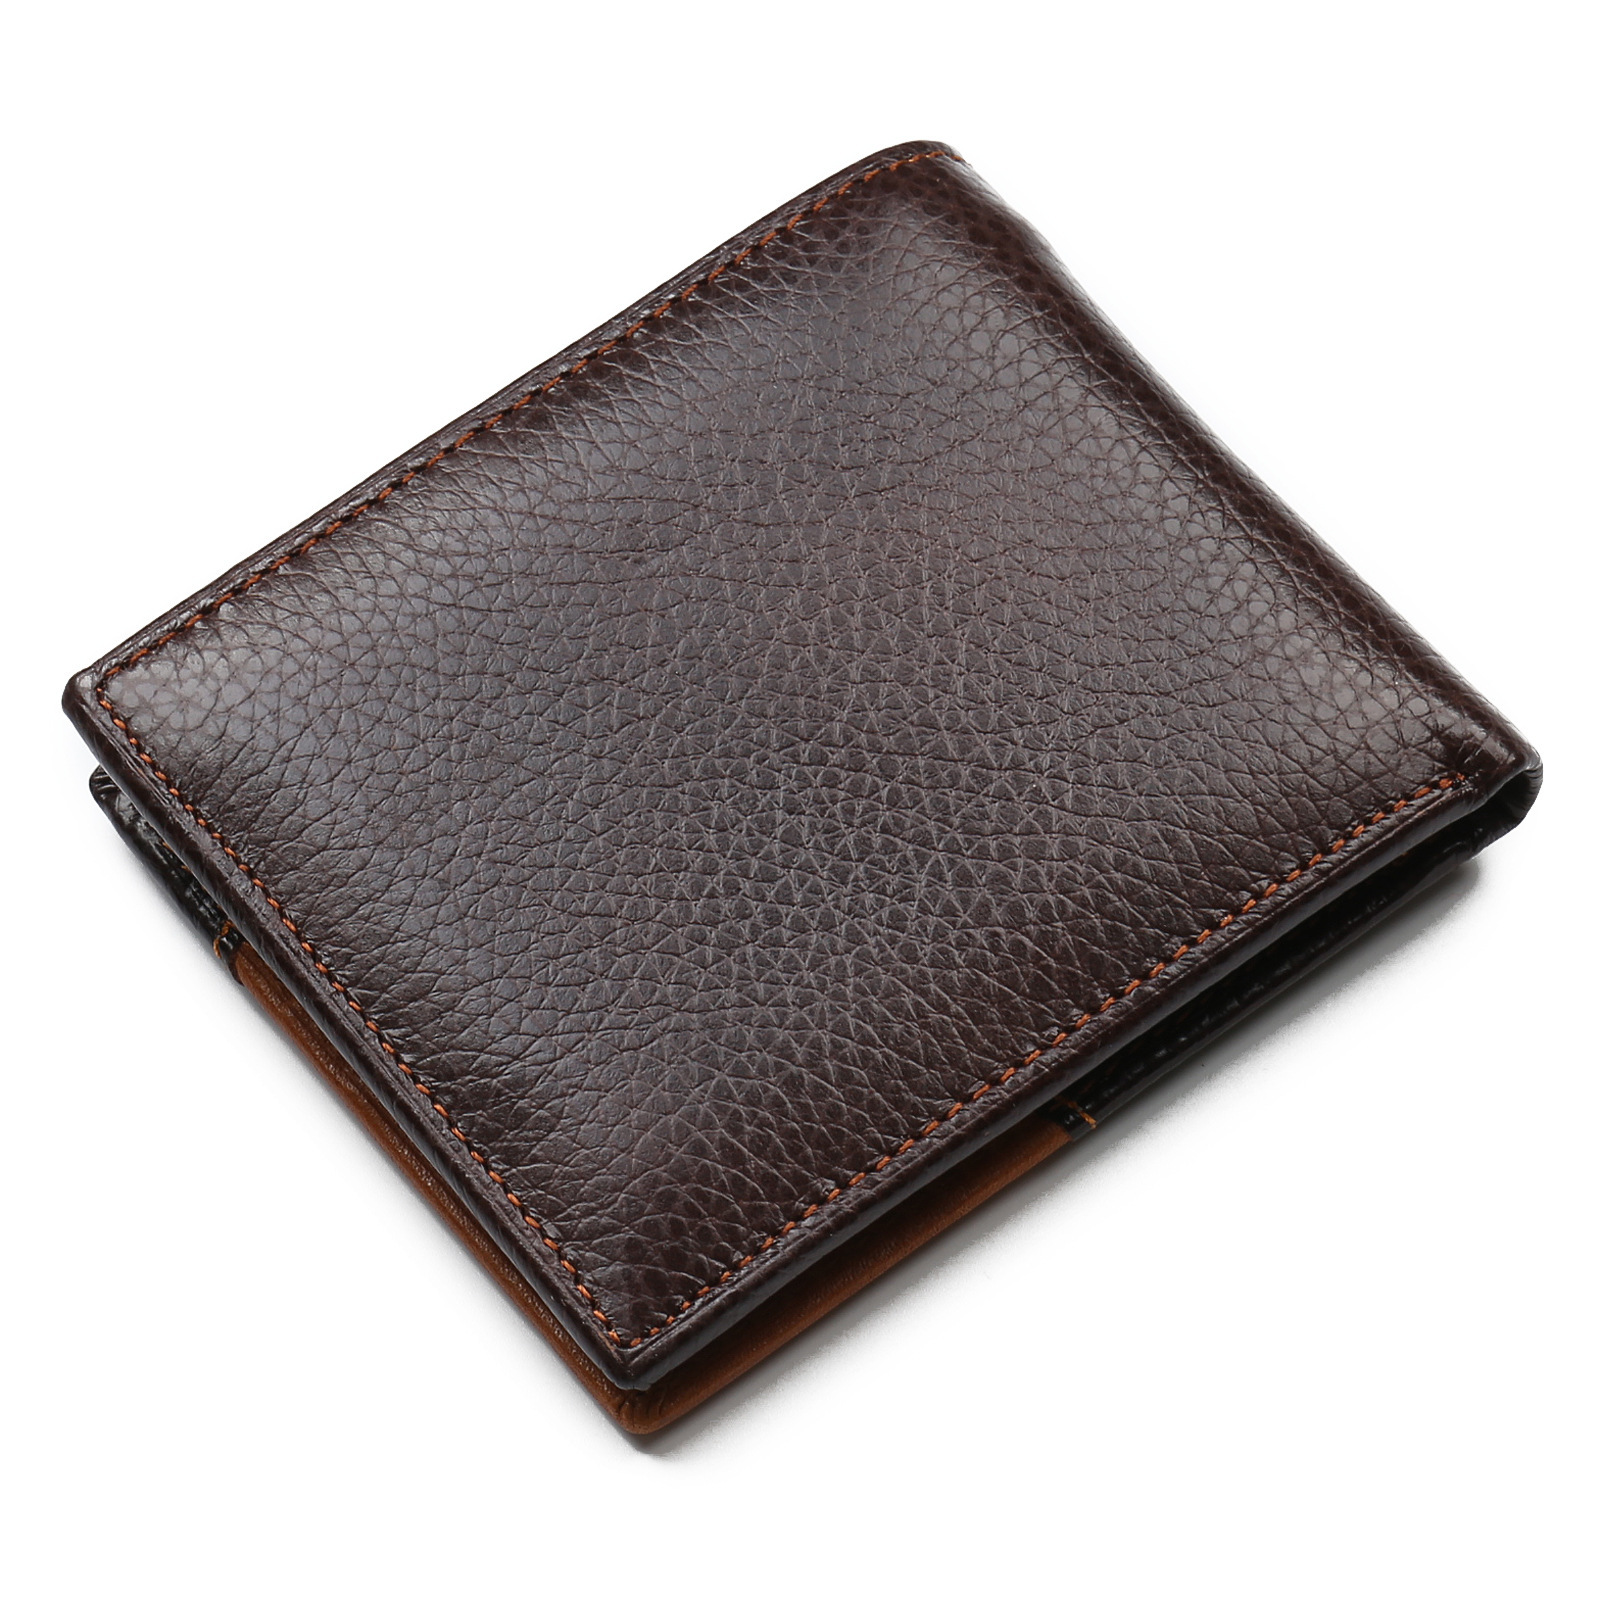 Famous Luxury Brand Genuine Leather Men Wallets Coin Pocket Zipper Men's Leather Wallet with Coin Purse portfolio cartera 3